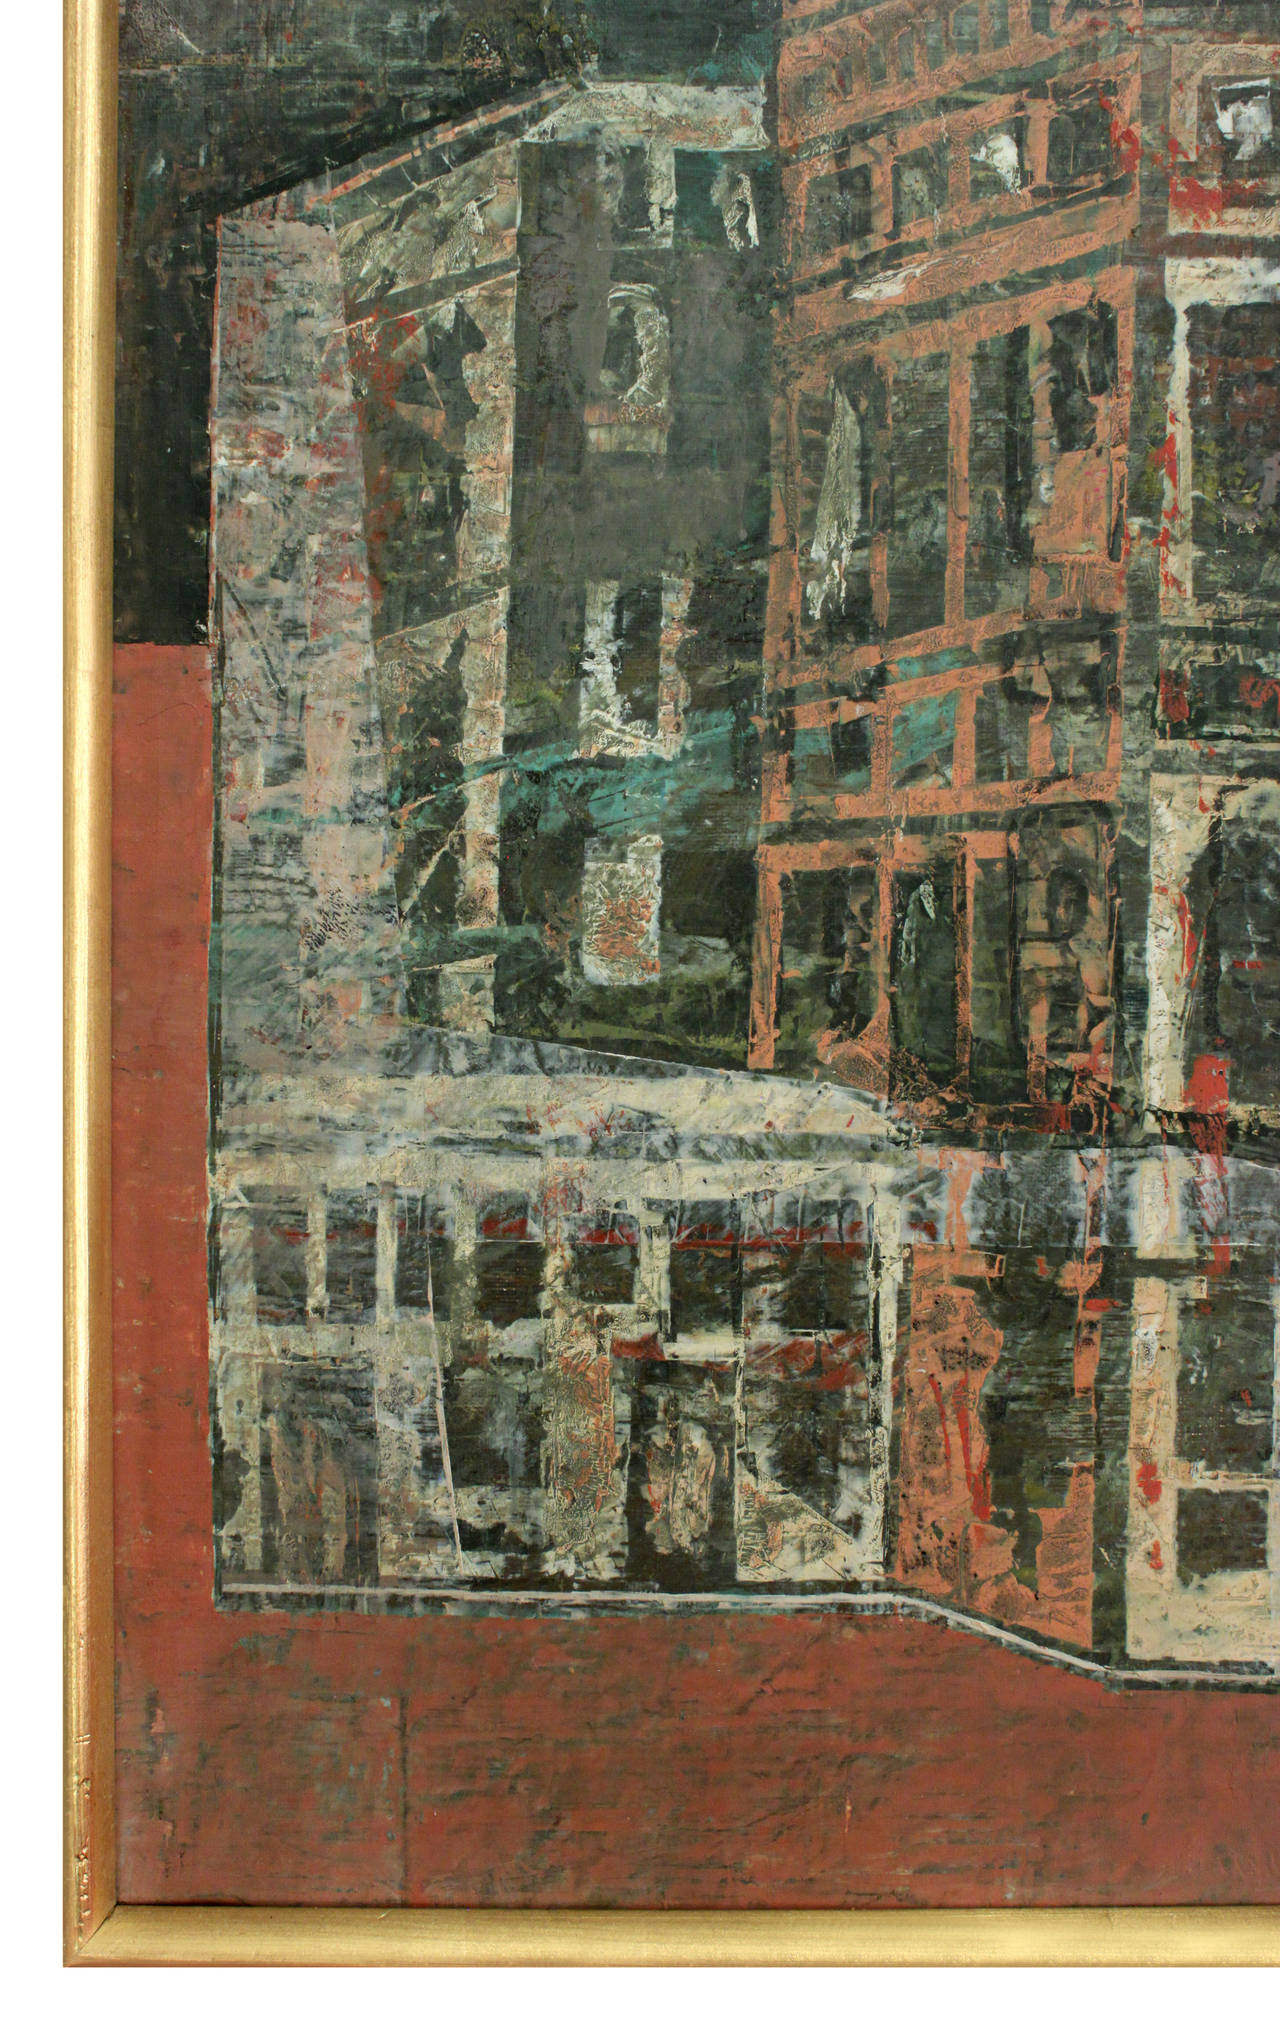 Mid-Century Modern Abstract Venetian Cityscape Painting by Olivier Charles For Sale